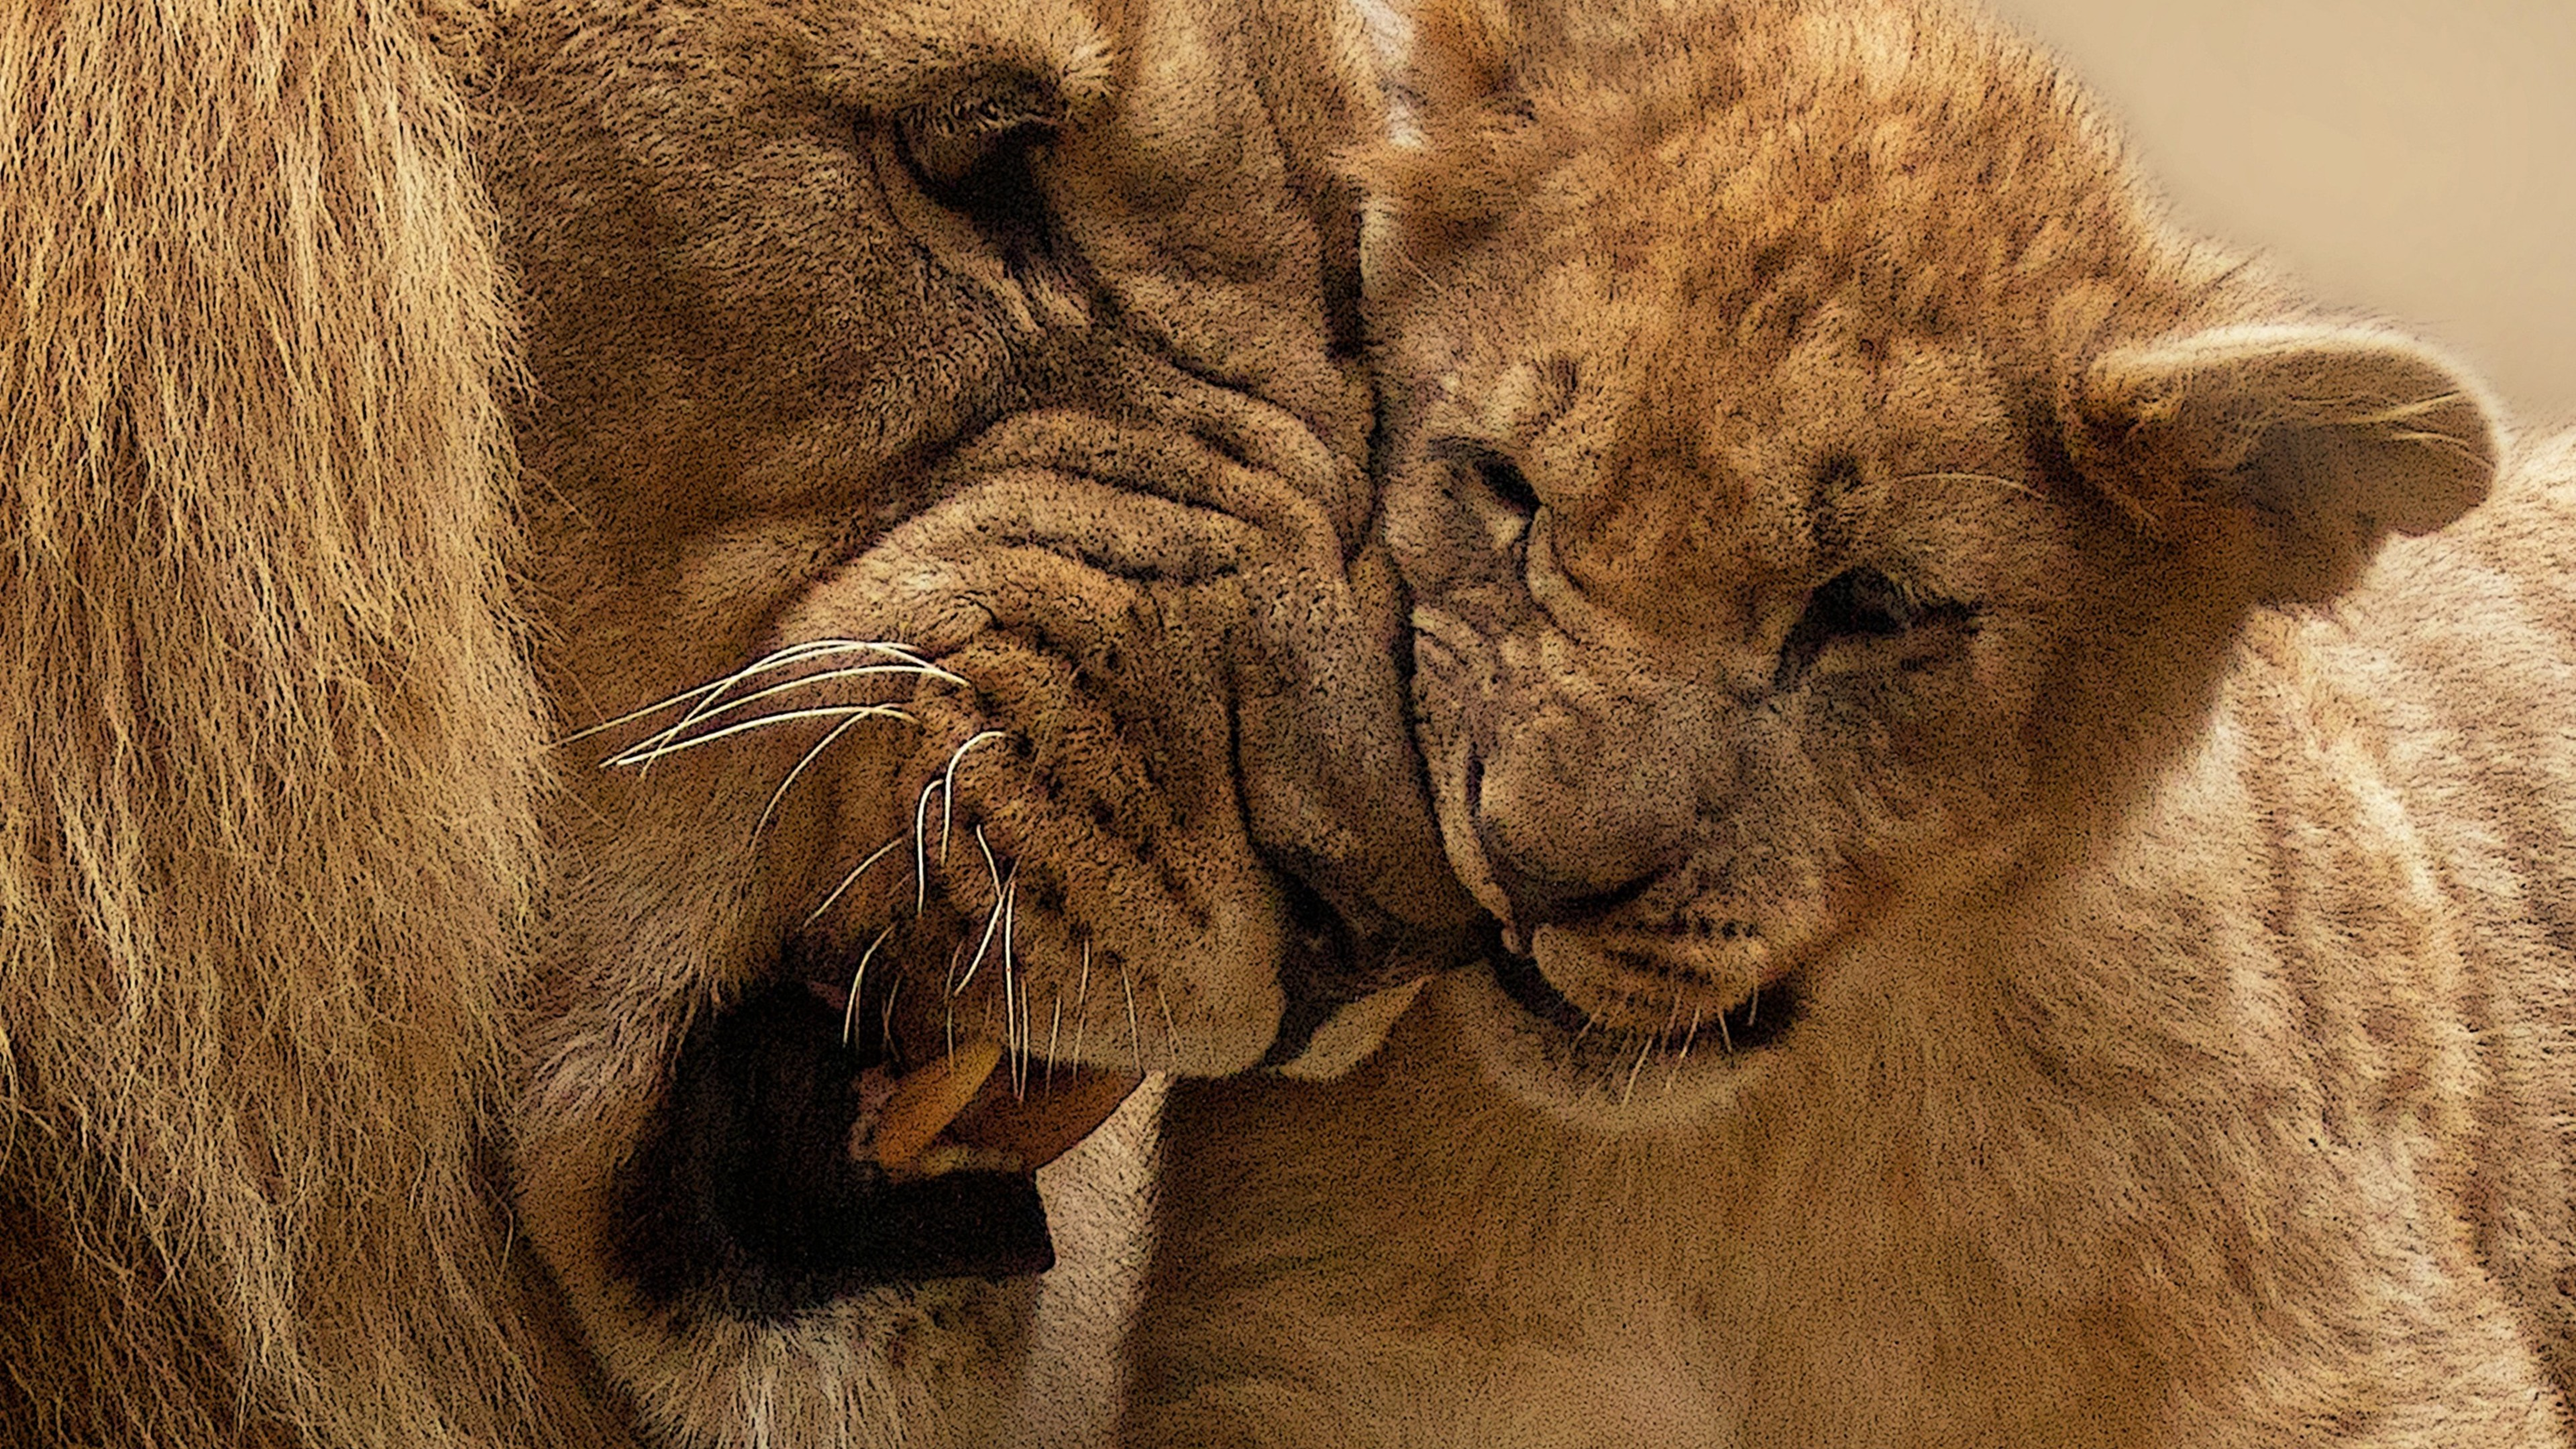 Lion mother cub hd animals 4k wallpapers images - Lion 4k wallpaper for mobile ...